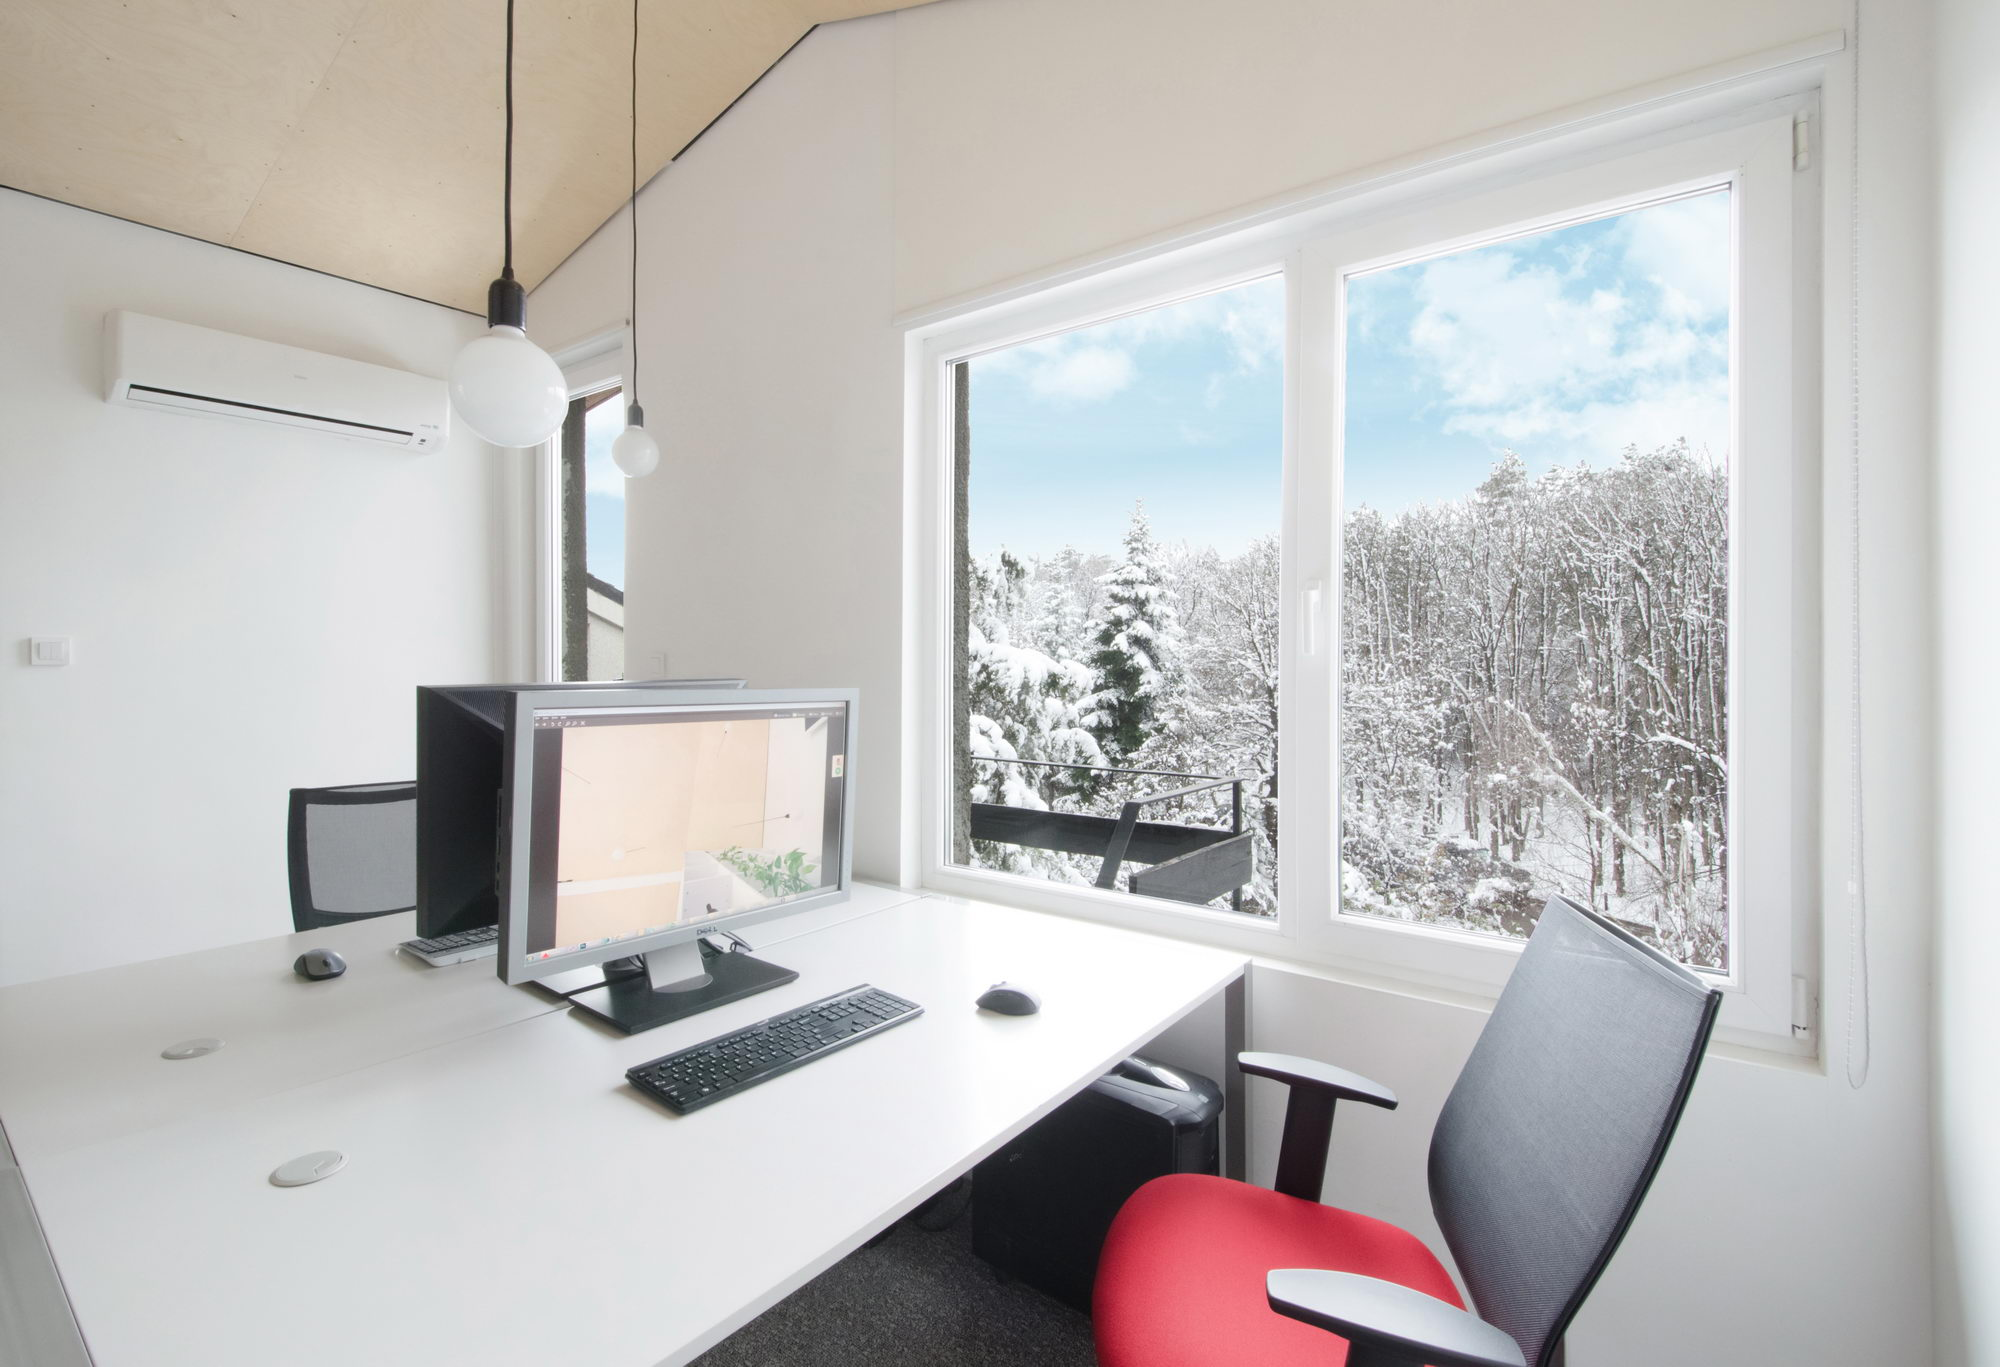 office da architects. DA Architects Studio. Our Studio, The Place Where We Get Inspired And Spend Most Of Day. When Were Looking For A New Office, Had Very Specific Office Da